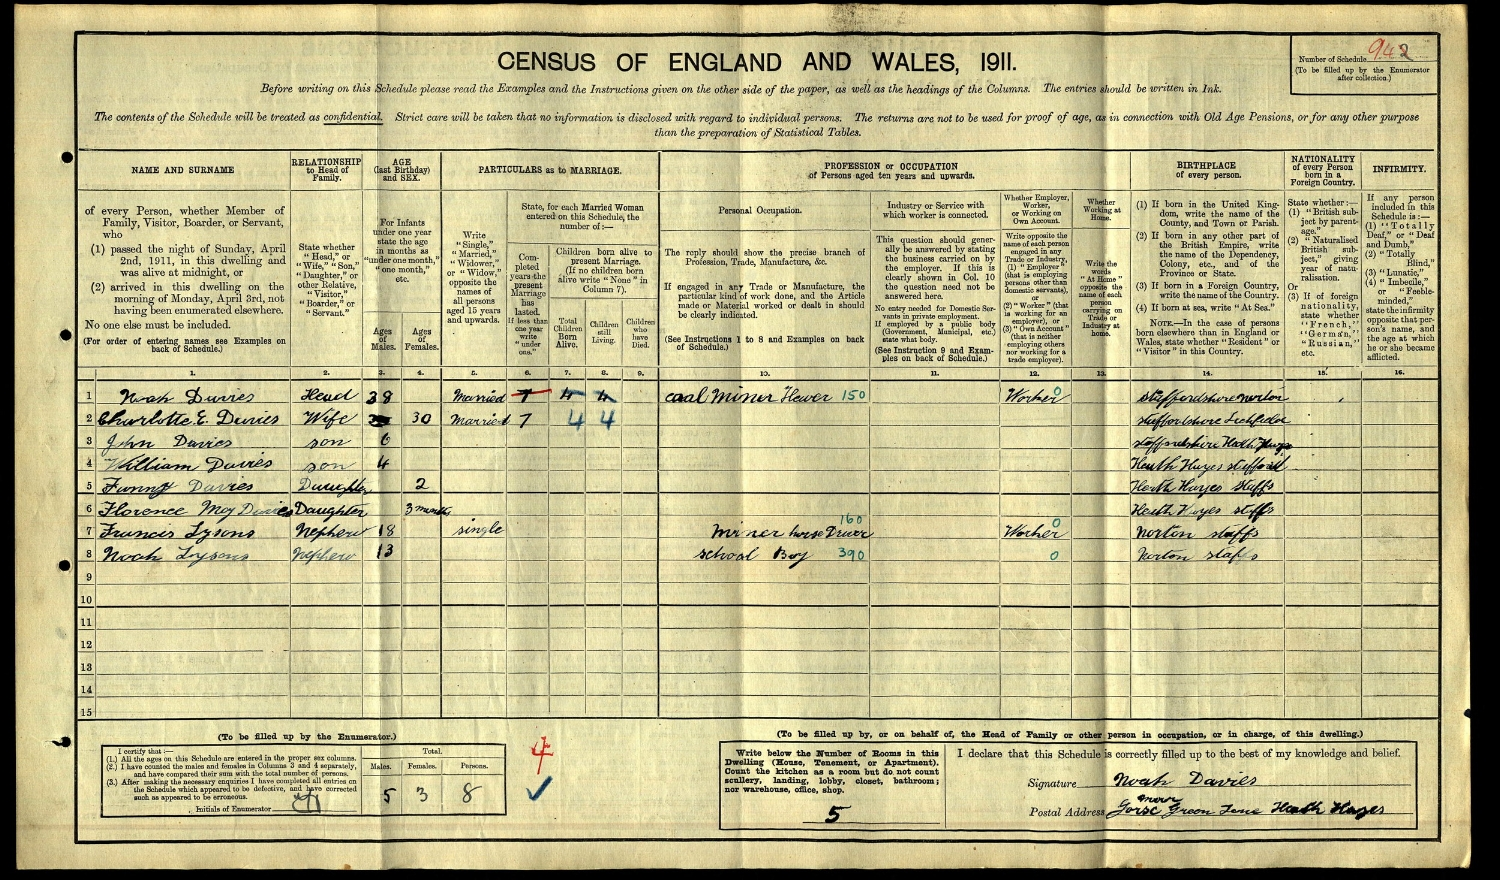 1911 Census entry for Noah and Frank Lysons